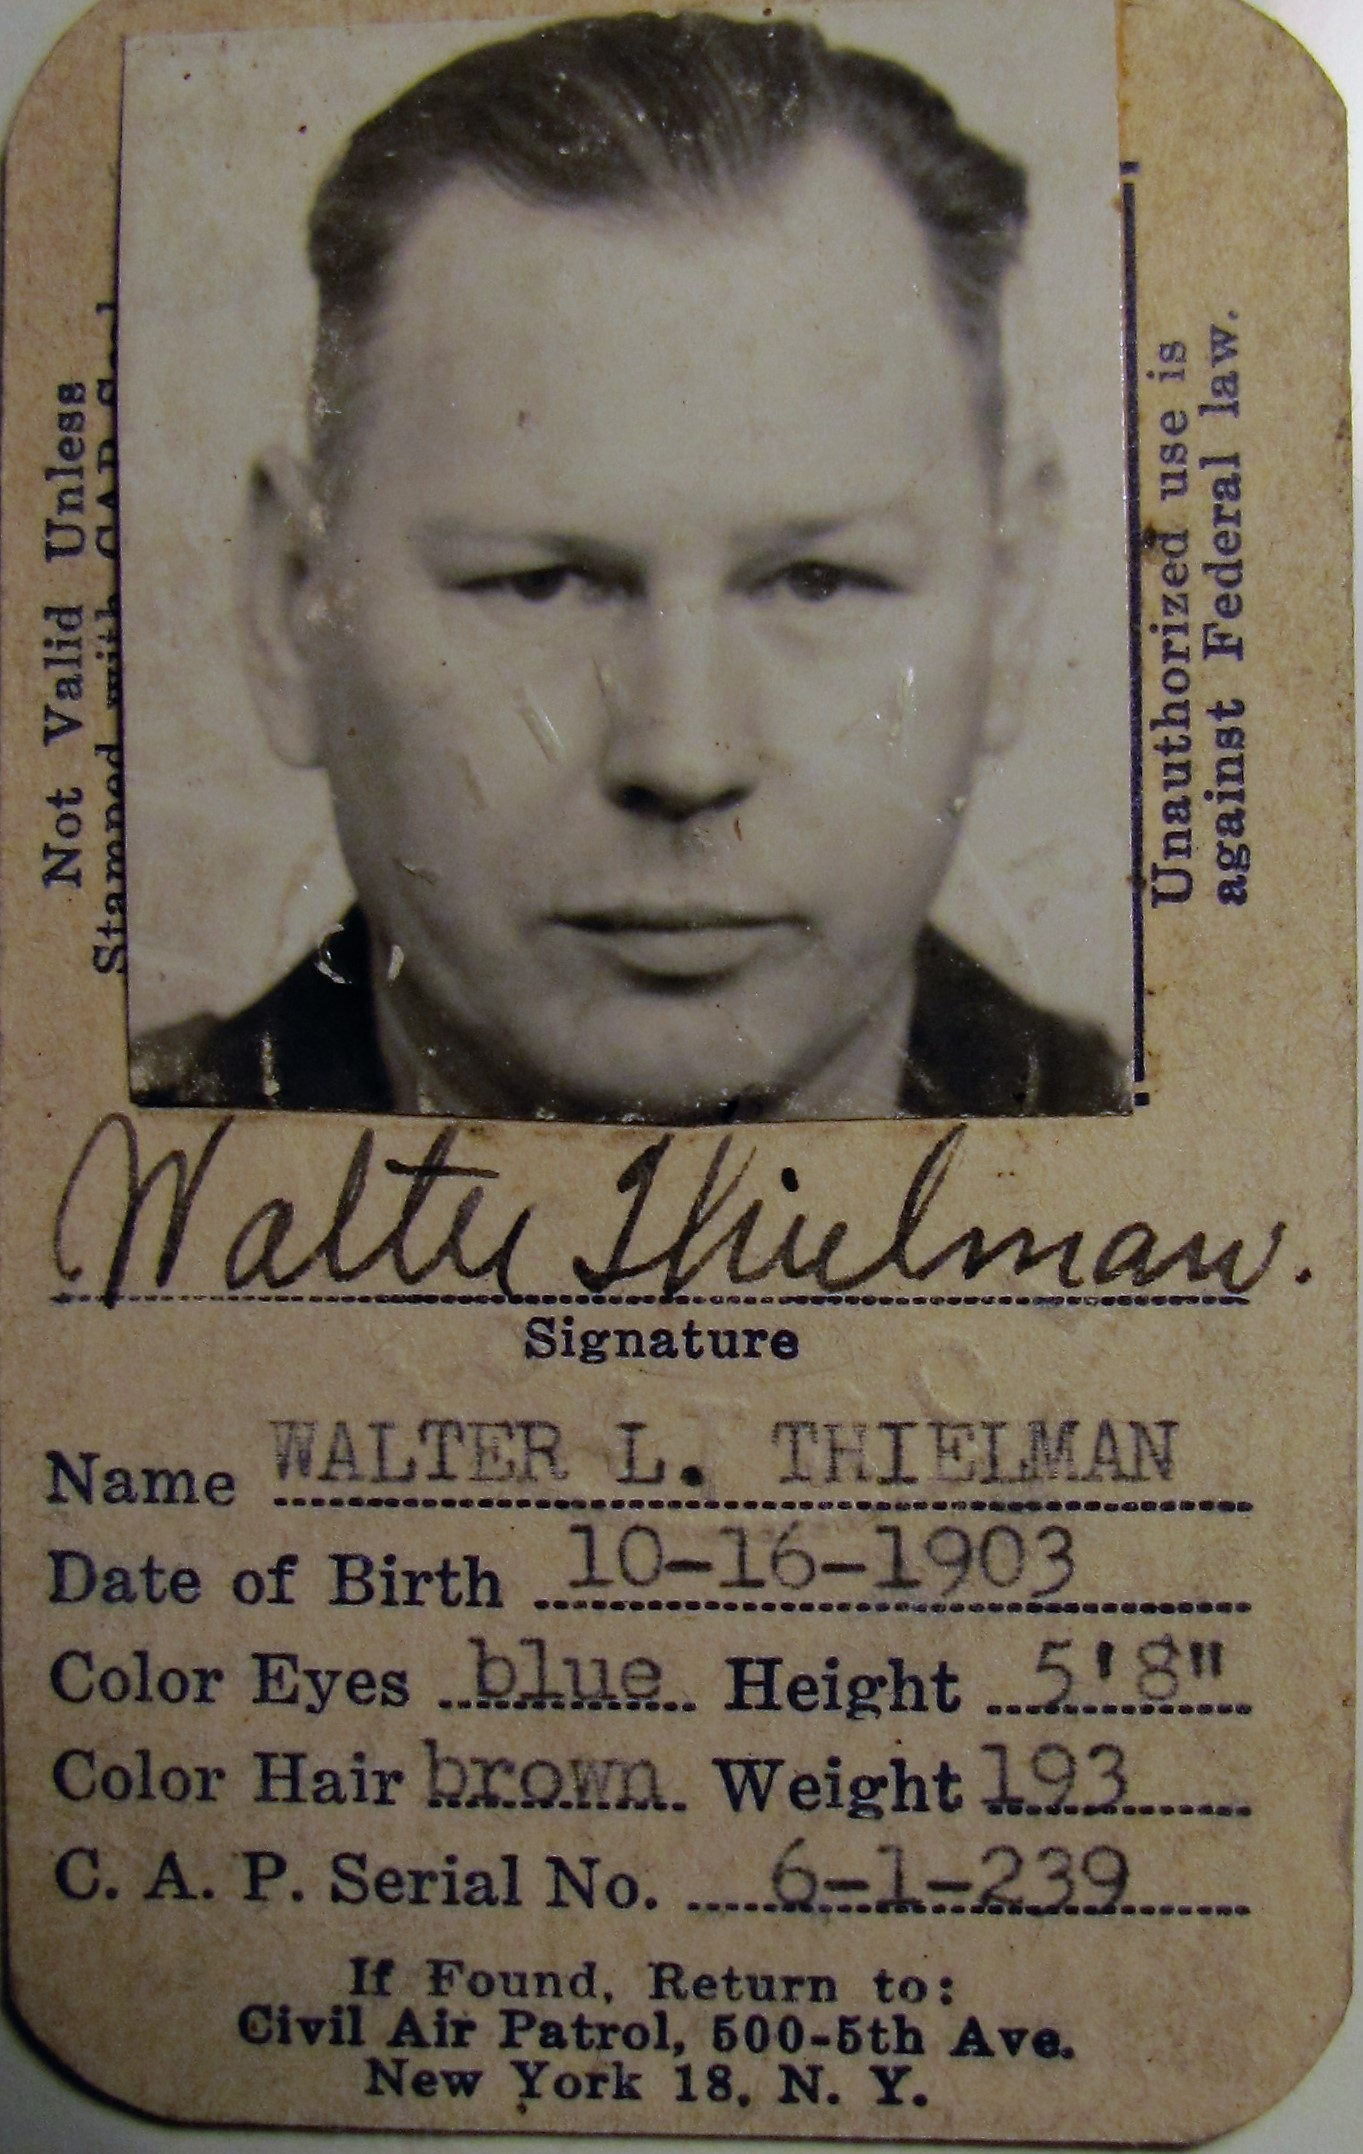 Civil Air Patrol Card, Walter Thielman